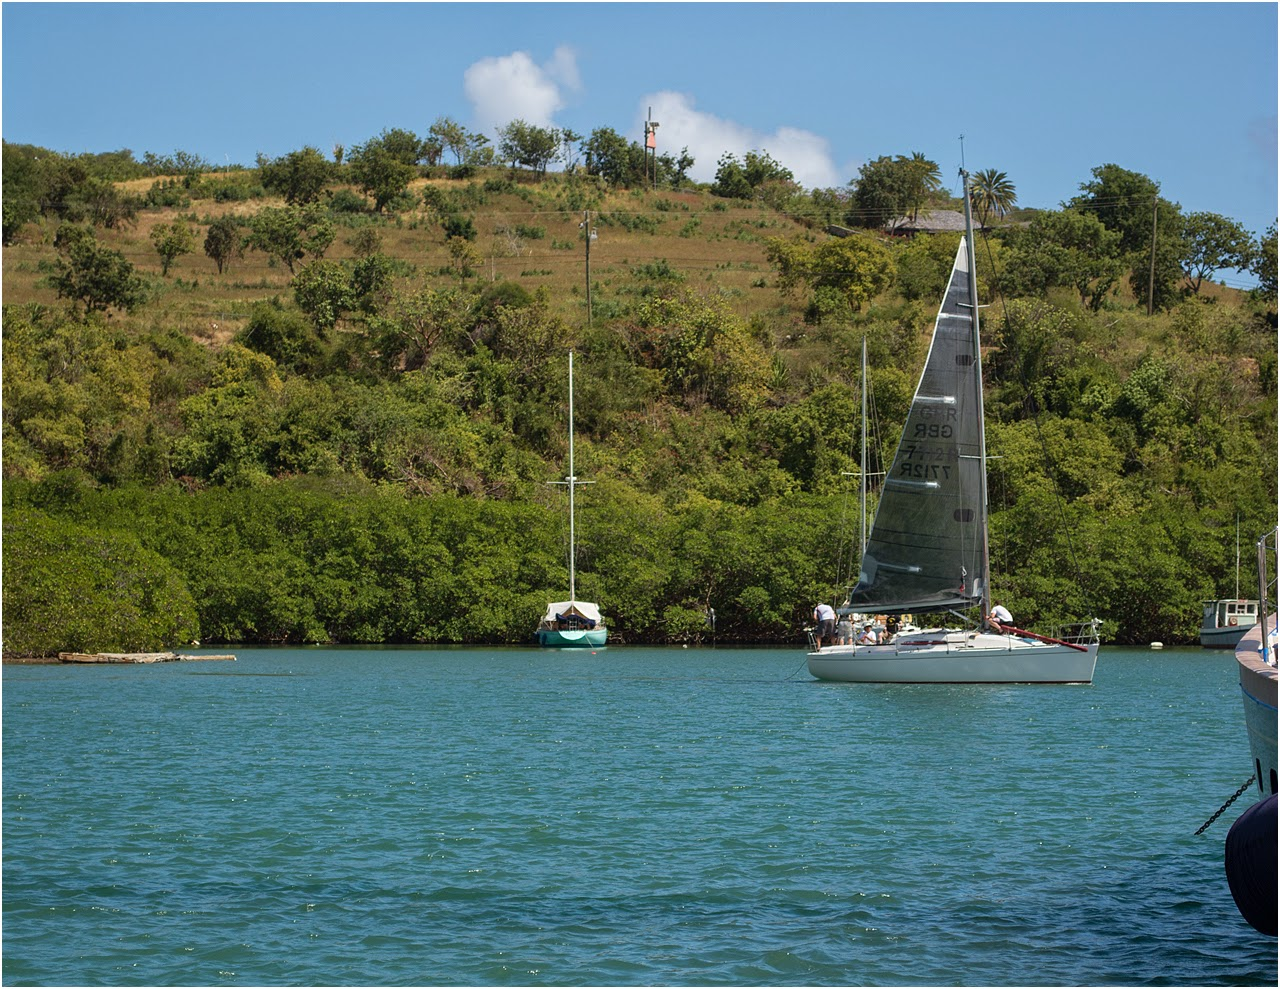 Zarafa tries out new sail in Antigua